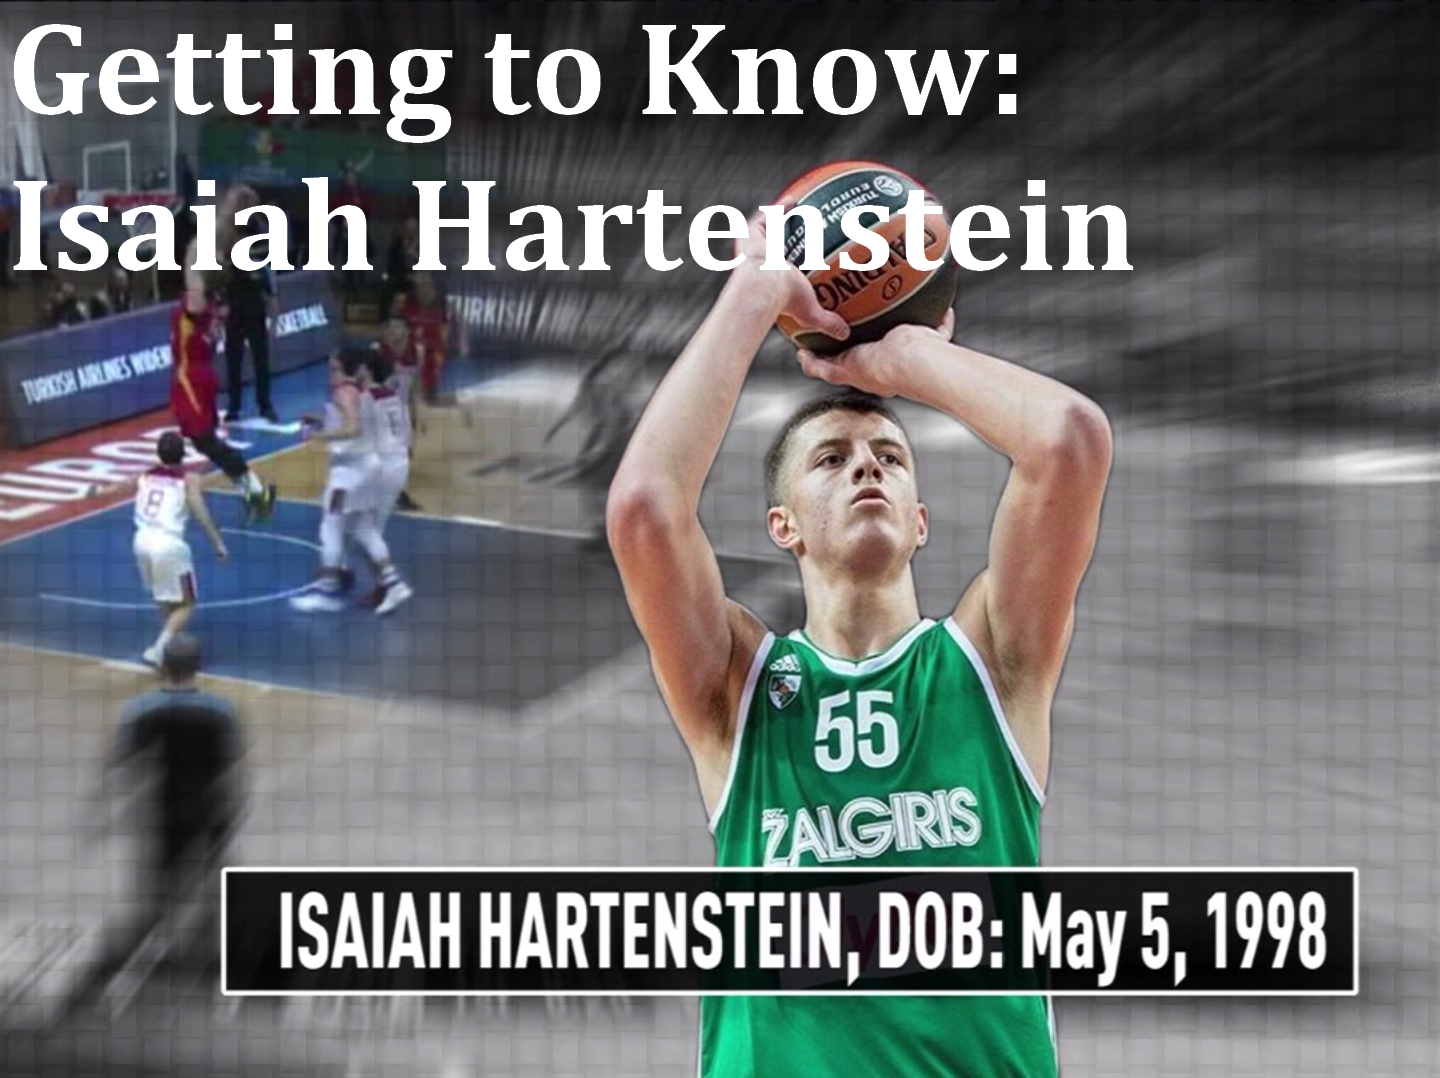 Getting to Know: Isaiah Hartenstein